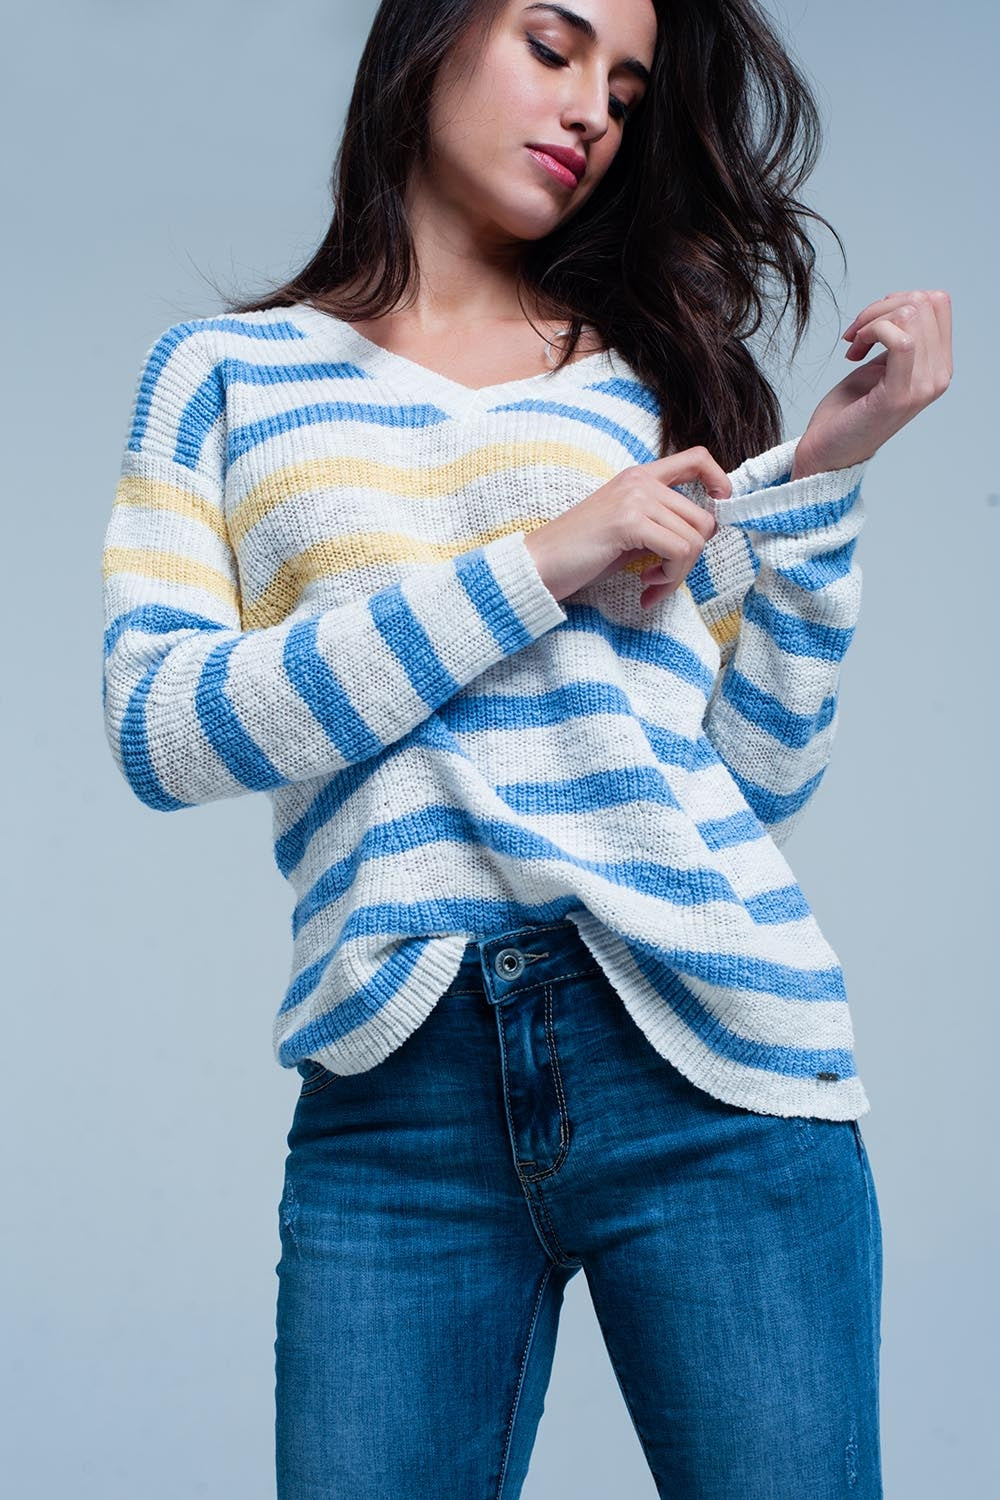 Blue Striped V-Neck Sweater-Women - Apparel - Sweaters - Pull Over-Product Details Light blue sweater with blue and yellow stripe pattern of very strong chunky knitted cotton. The pullover has a slightly ribbed knit texture long sleeves and a V-neck.-Keyomi-Sook